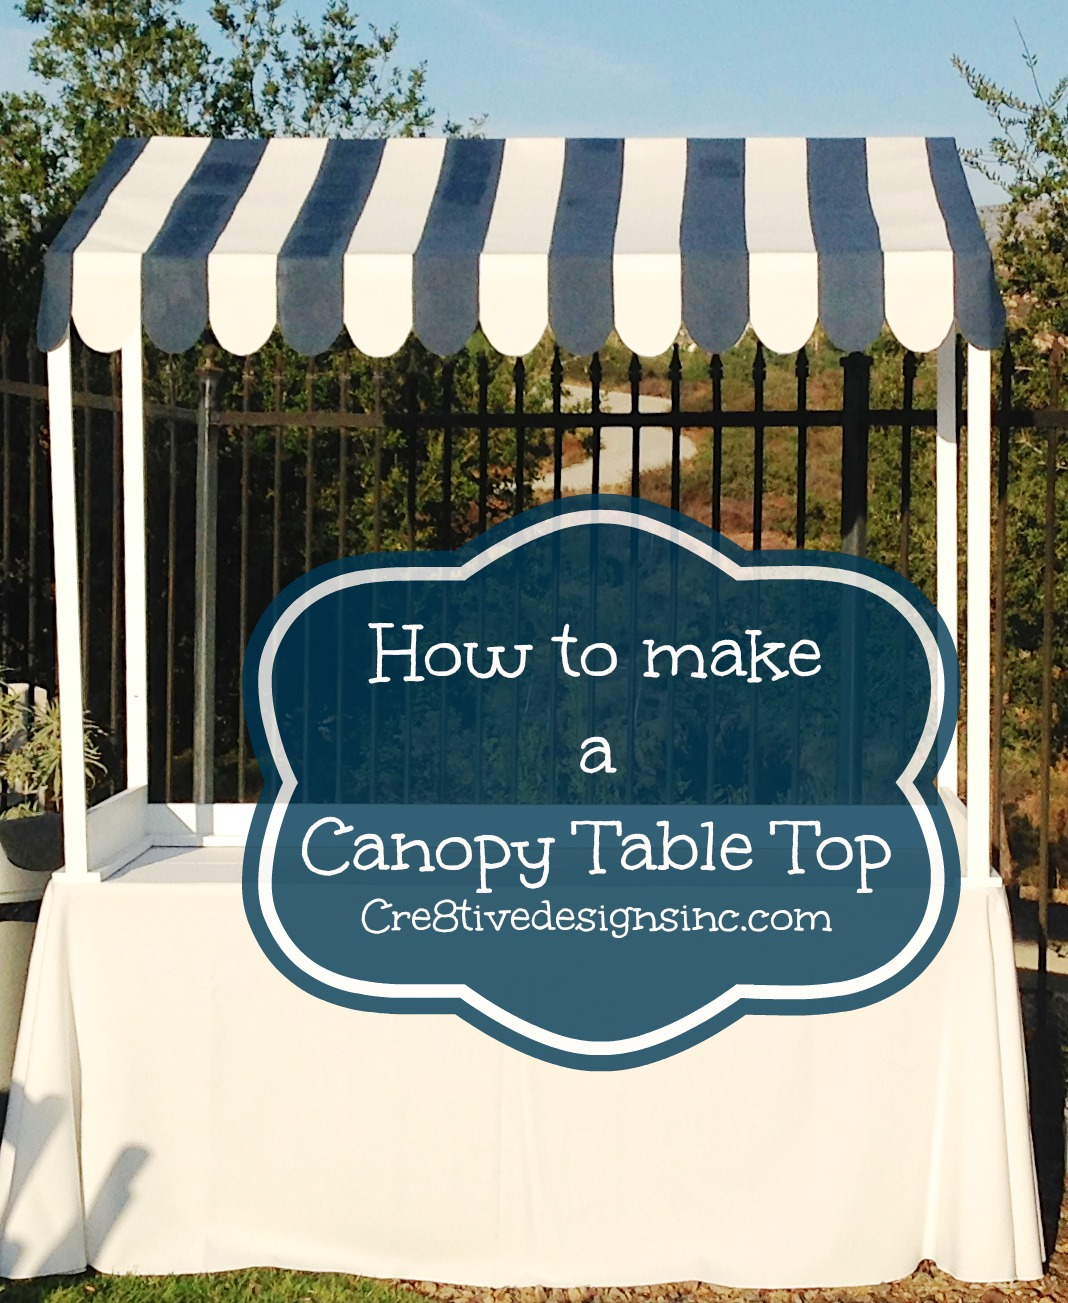 How to make a table top canopy & How to make a table top canopy - Cre8tive Designs Inc.